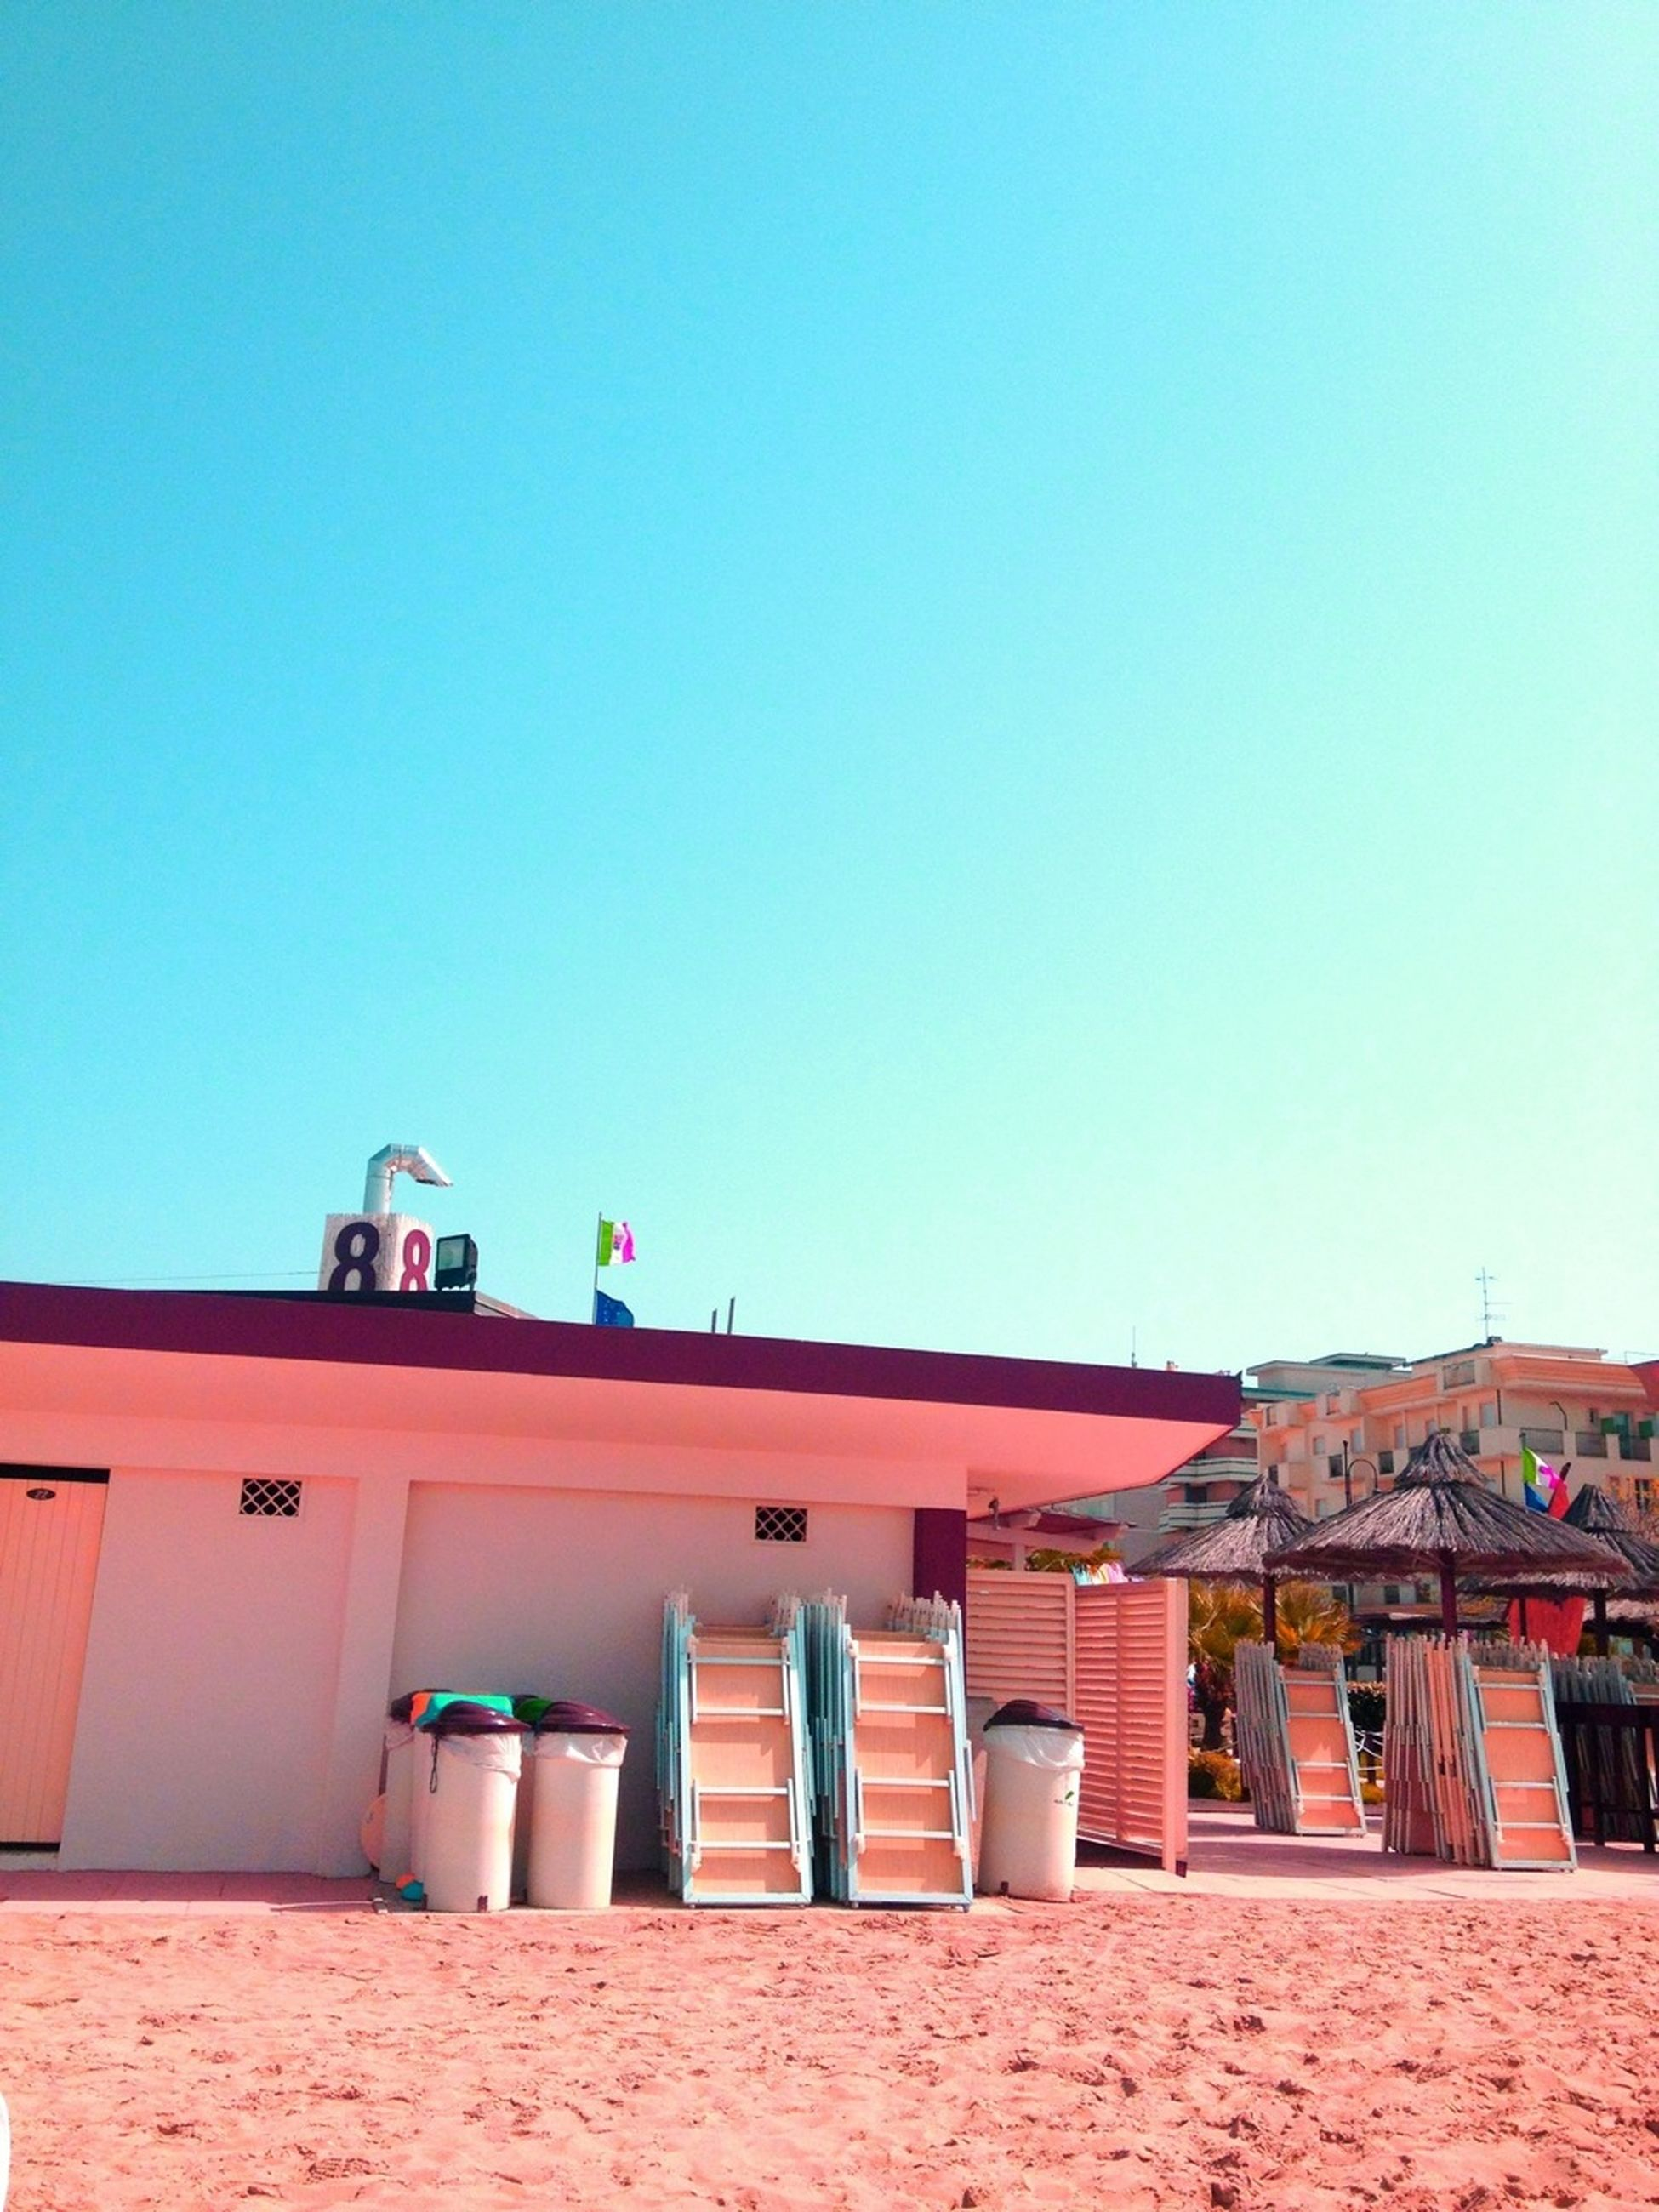 architecture, building exterior, built structure, clear sky, copy space, blue, roof, house, low angle view, residential structure, sunlight, day, residential building, outdoors, exterior, building, high section, no people, roof tile, facade